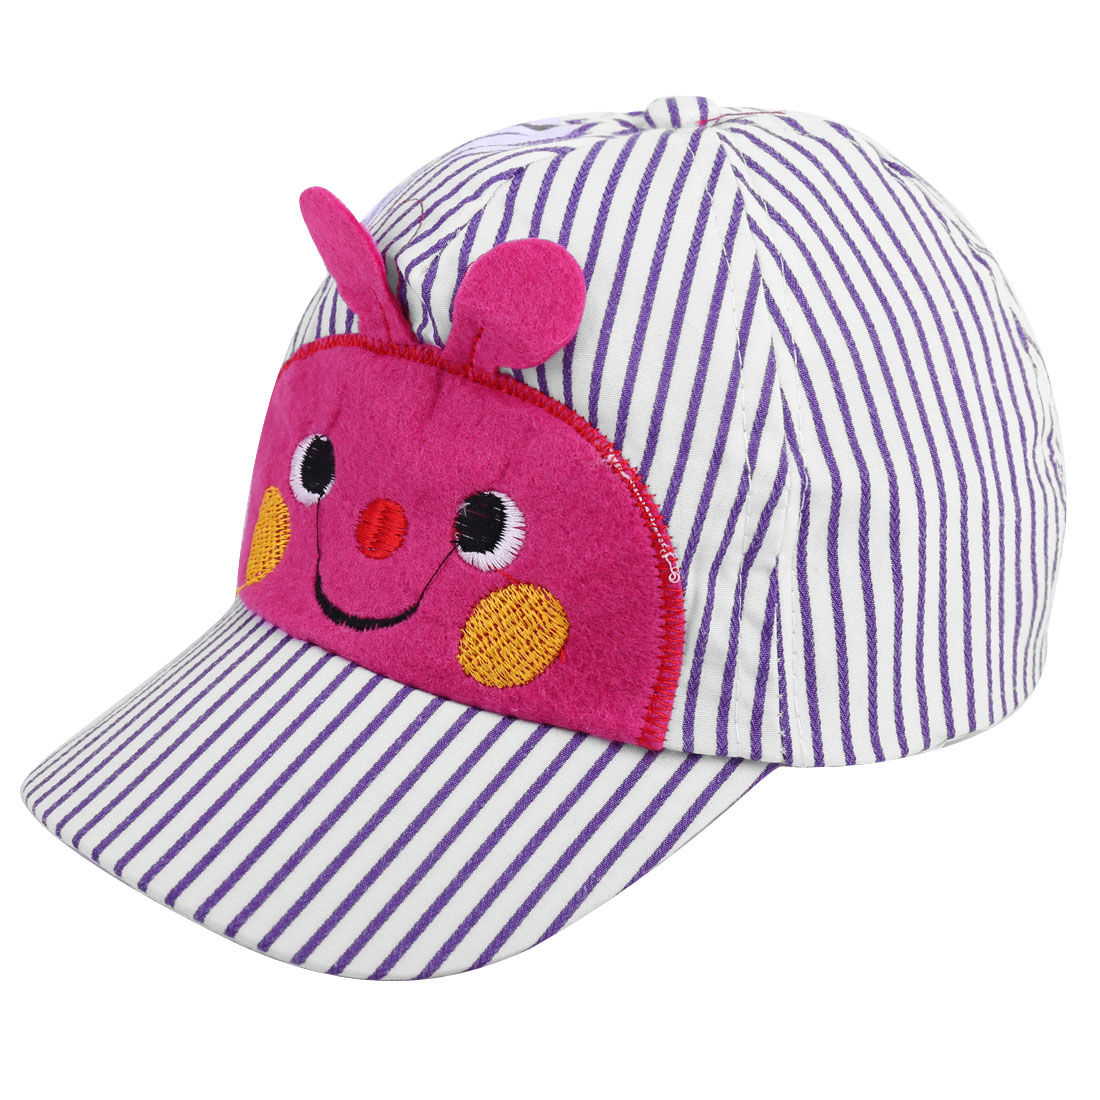 Boys Girls Bee Face Low Crown Stripes Baseball Cap Purple White